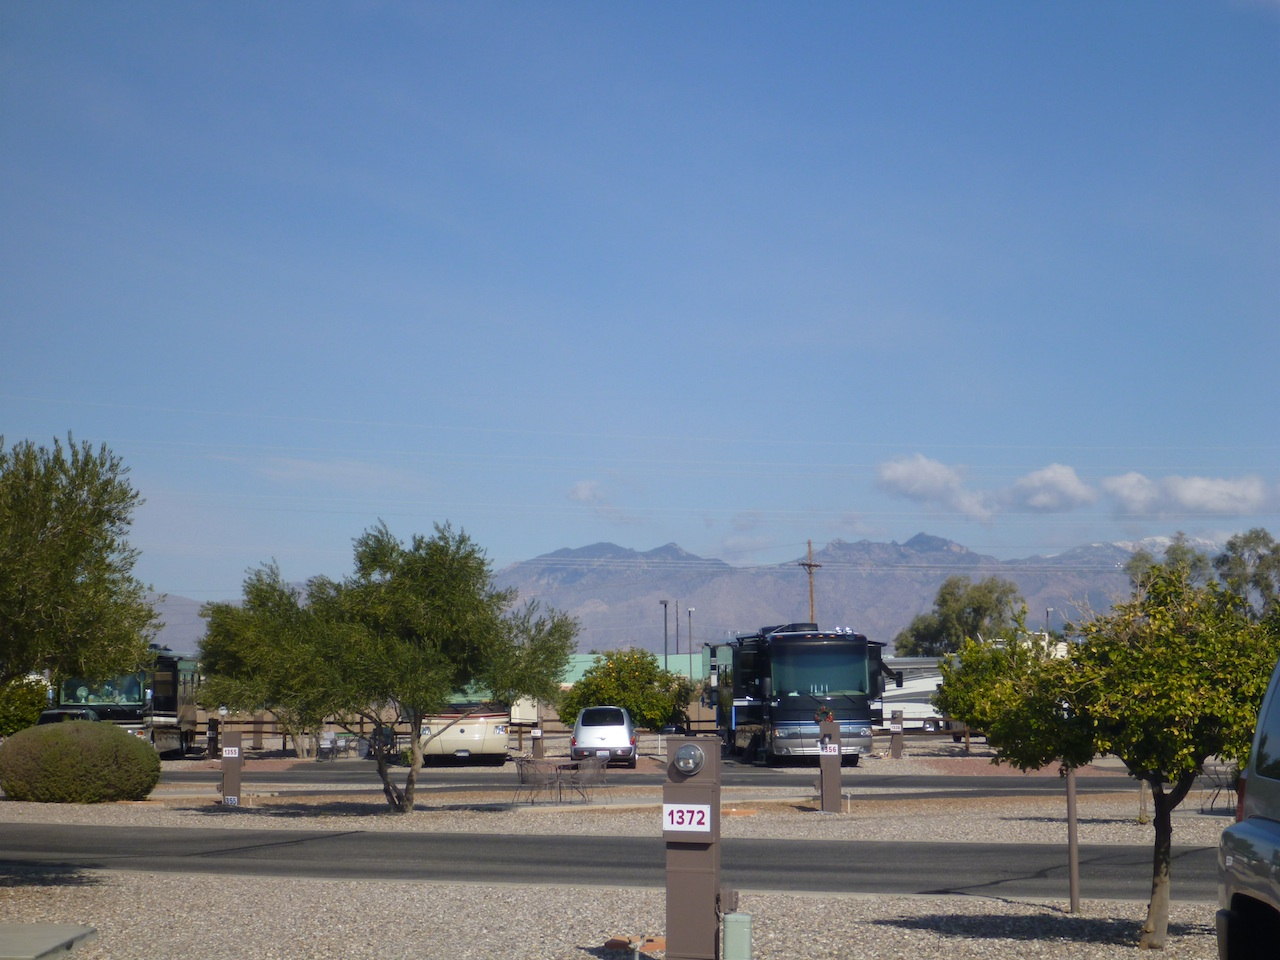 The View From Our Coach At The Lazydays RV Campground In Tucson, AZ